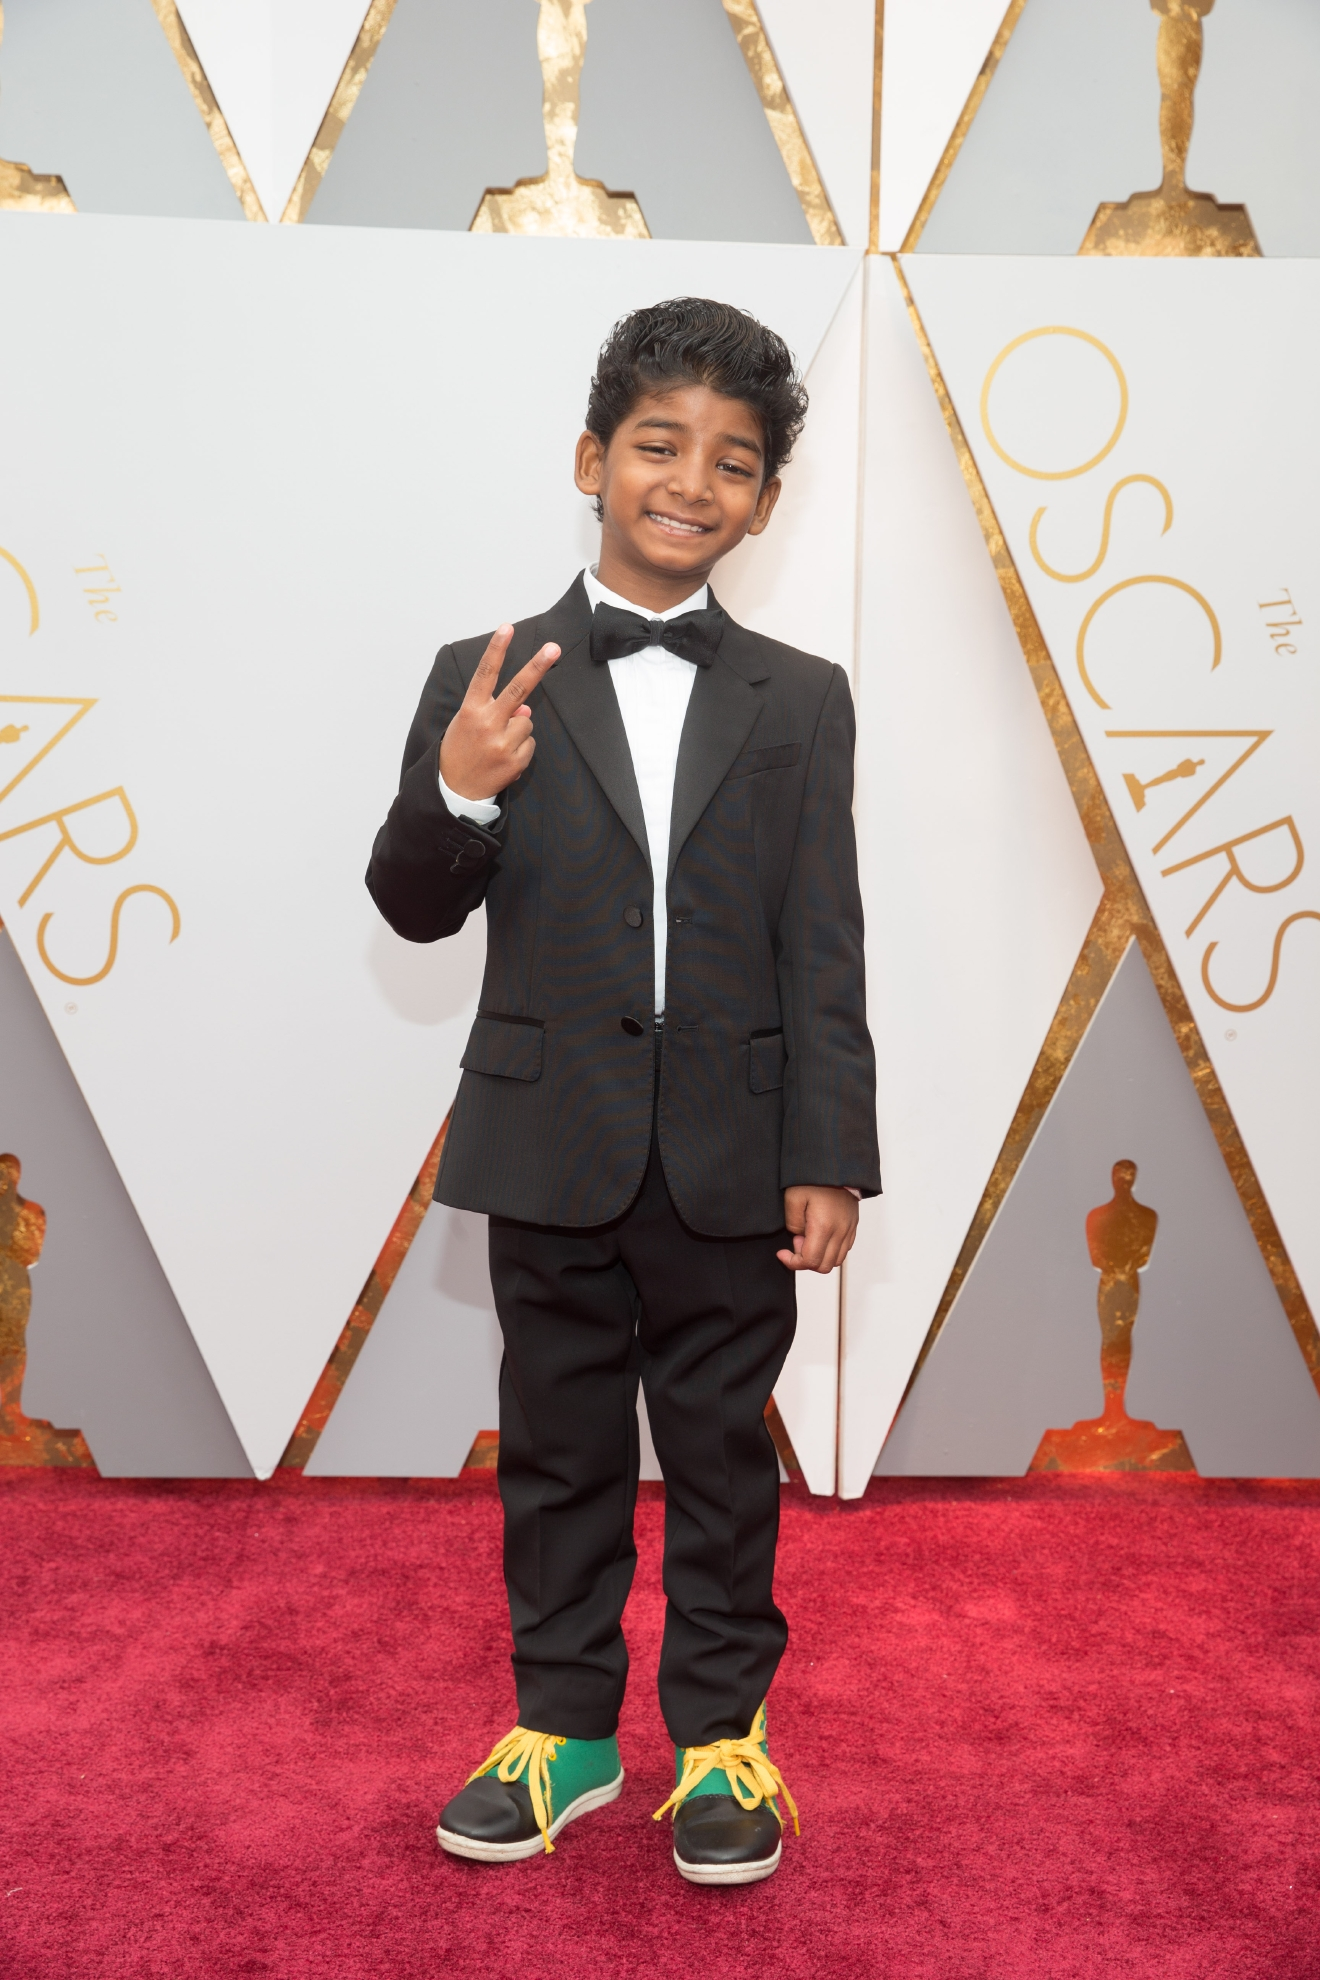 #4: Sunny Pawar. JUST LOOK AT THIS LIL' MAN! (Image: AMPAS)